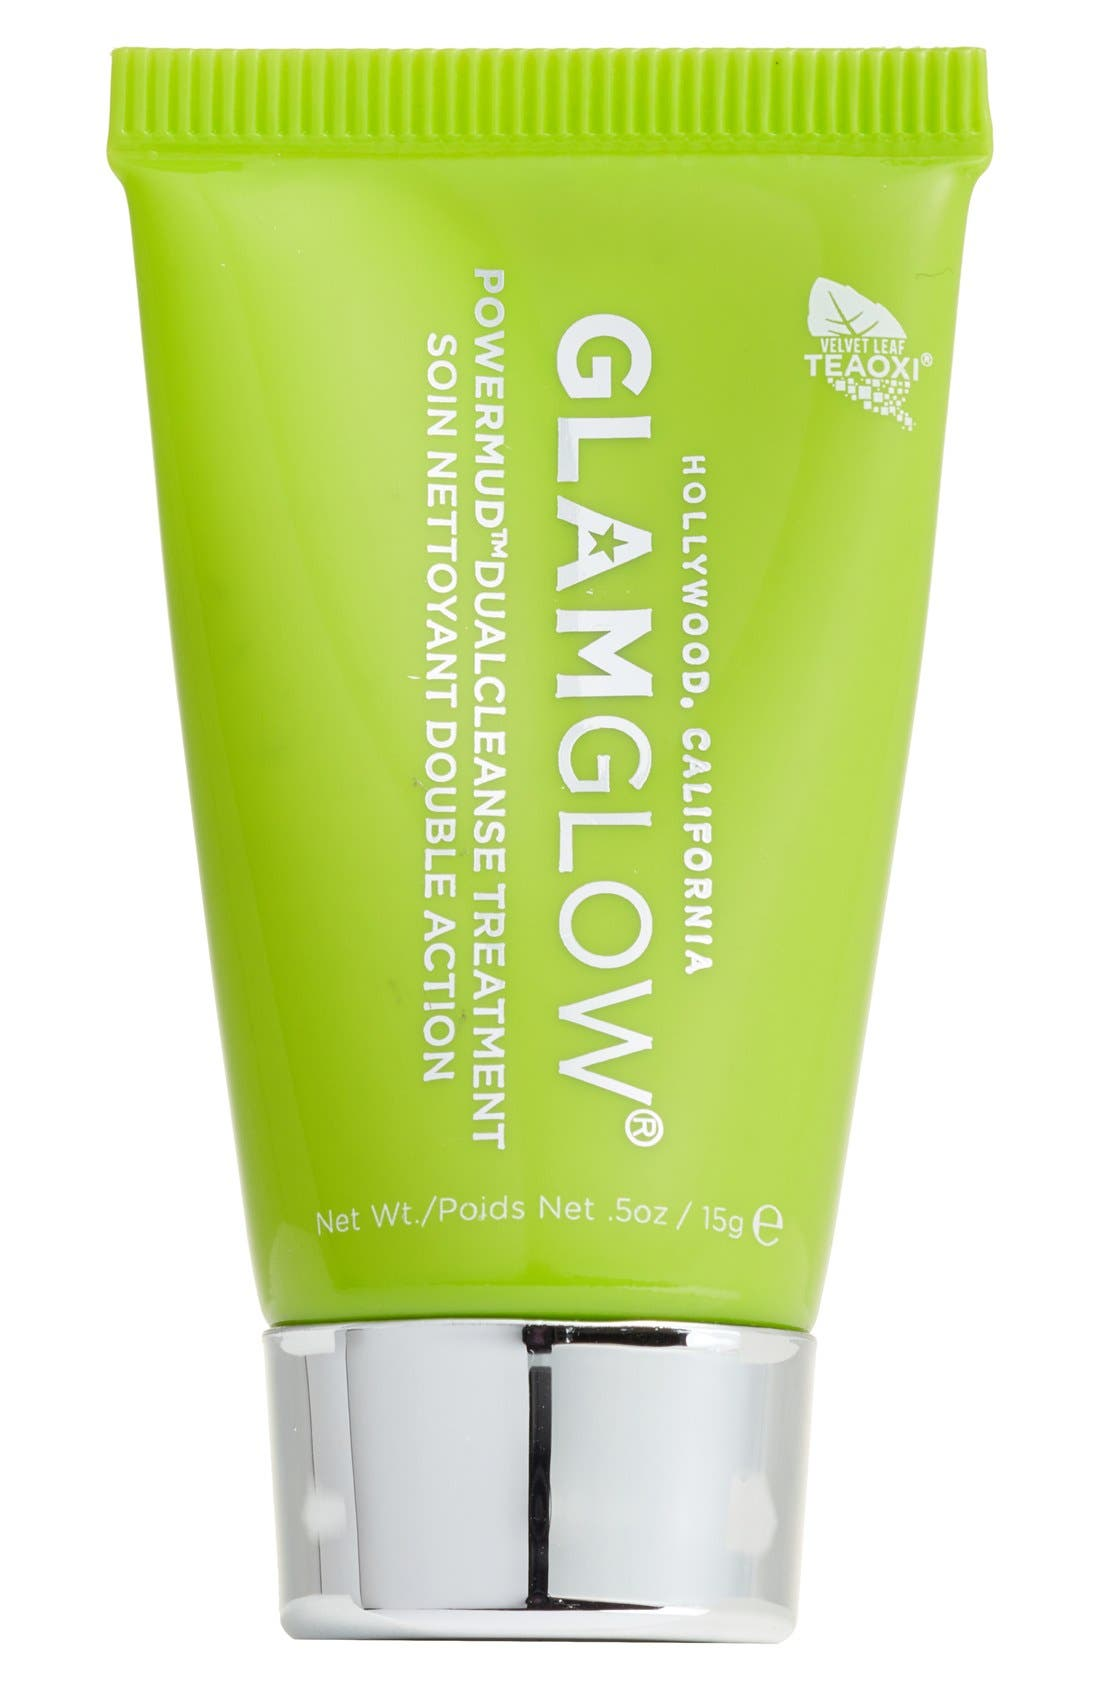 GLAMGLOW® POWERMUD™ Dual Cleanse Treatment (Travel Size) (Nordstrom Exclusive)